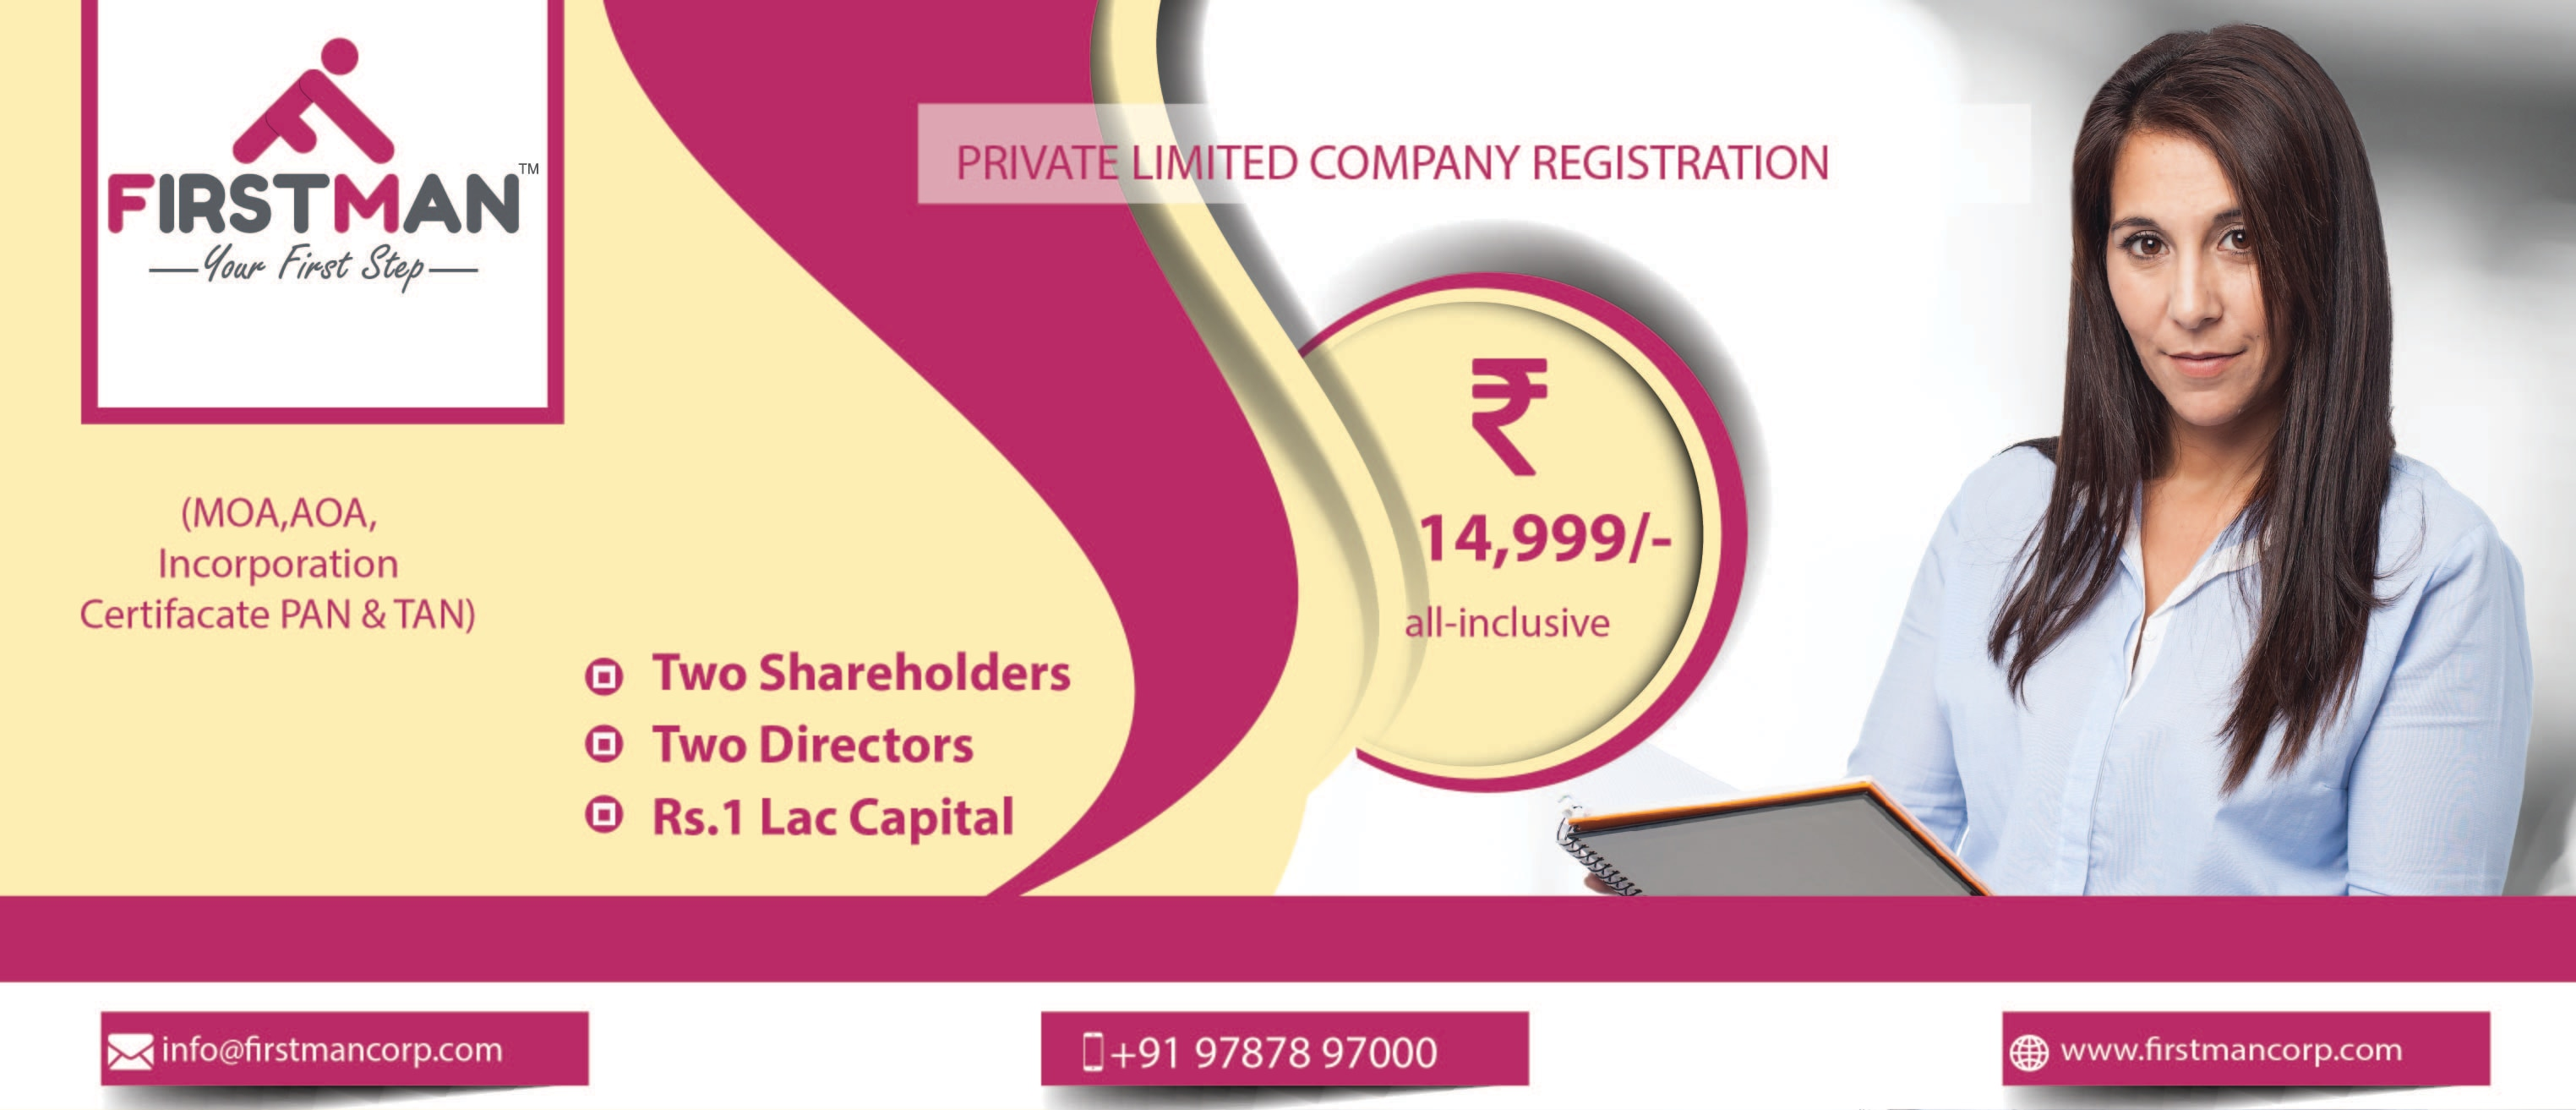 "Private Limited Company is ""Limited by Shares"" i.e. there are shareholders associated with the company and the theoretical value of the shares & any paid in return for the issue of shares by the corporation is limited to the capital which is initially invested.   ADVANTAGES OF PRIVATE LIMITED COMPANY   Private limited company is the most popular corporate entity amongst small, medium and large businesses in India due to various advantages.  •	Ideal for Startups & Growing Business  •	Easy to Get Funding, Raise Venture Capital Fund, Additional capital can easily be raised by selling shares  •	Member's liability is restricted to the amount of shares they own. They have limited liability  •	Members are well known to each other; however control is in the hands of owners of capital.  •	In the management of affairs and conduct of business is greater flexibility.  •	The number of directors in a private limited company is at least two.  •	Private limited company is that its limited liability, due to which every members enjoy this facility. It has the advantage of a public company and a partnership firm.  •	A private company after receiving certificate of incorporation start business immediately.  •	The company can continue to trade even if one of its member's dies  •	Shares can be bought and sold with director's approval  •	The private company has a separate legal existence from that of its owners. It can own property and sue and be sued  •	This type of organisation has a much higher business status than a sole trader   DISADVANTAGES OF PRIVATE LIMITED COMPANY   One of the disadvantages of private limited company is that it restricts transferability of shares by its articles.  •	In a private limited company the number of members in any case cannot exceed200.  •	Another disadvantage of private limited company is that it cannot issue prospectus to general public.  •	In stock exchange shares cannot be quoted. Audited annual returns and accounts have to be made to the Registrar of Companies. All these documents are available for public inspection  •	A private limited company id more expensive and time consuming to set up than a sole trader or partnership  •	Professional help will be needed to set up a private limited company  •	There is separation of ownership and control which means that the owners no longer make all the decisions Start your Private Limited with firstmancorp.com because we serve you beyond your satisfaction.  Siva Subramanian C FirstMan Corporate Services LLP Chennai - India +91 97878 97000"